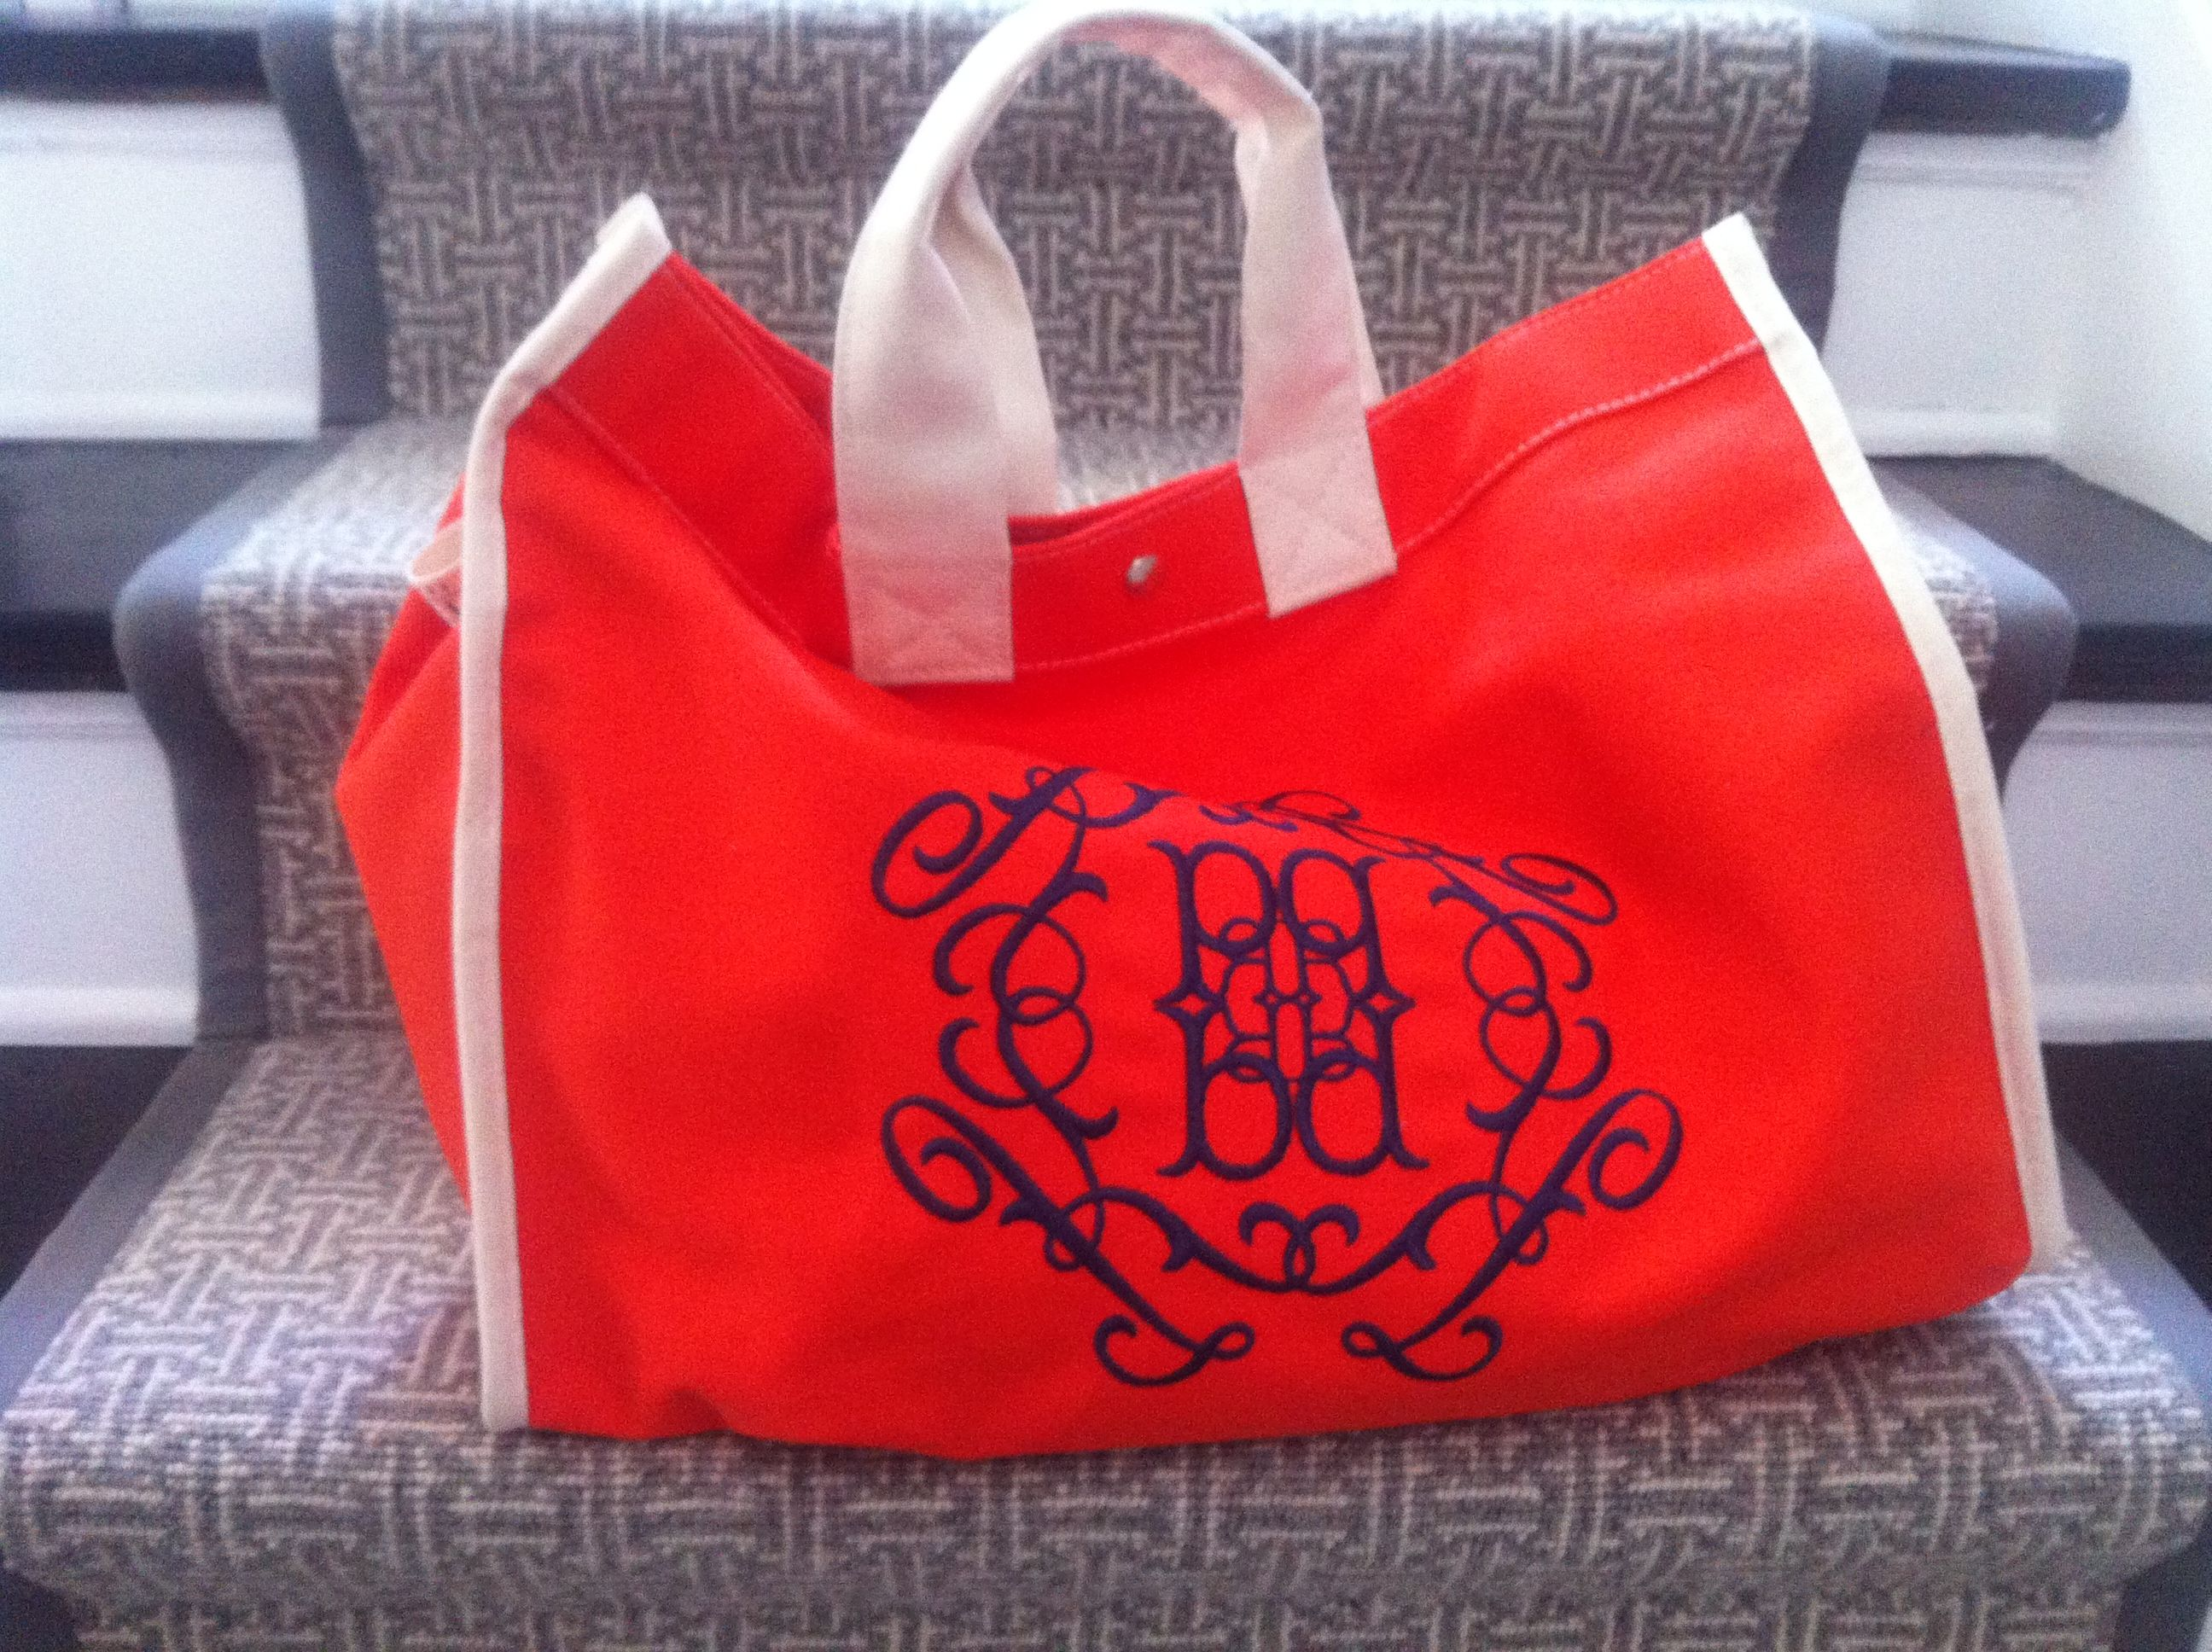 My new bag! Utility canvas bag with custom monogram. So much more fun to carry a bag with my initials.